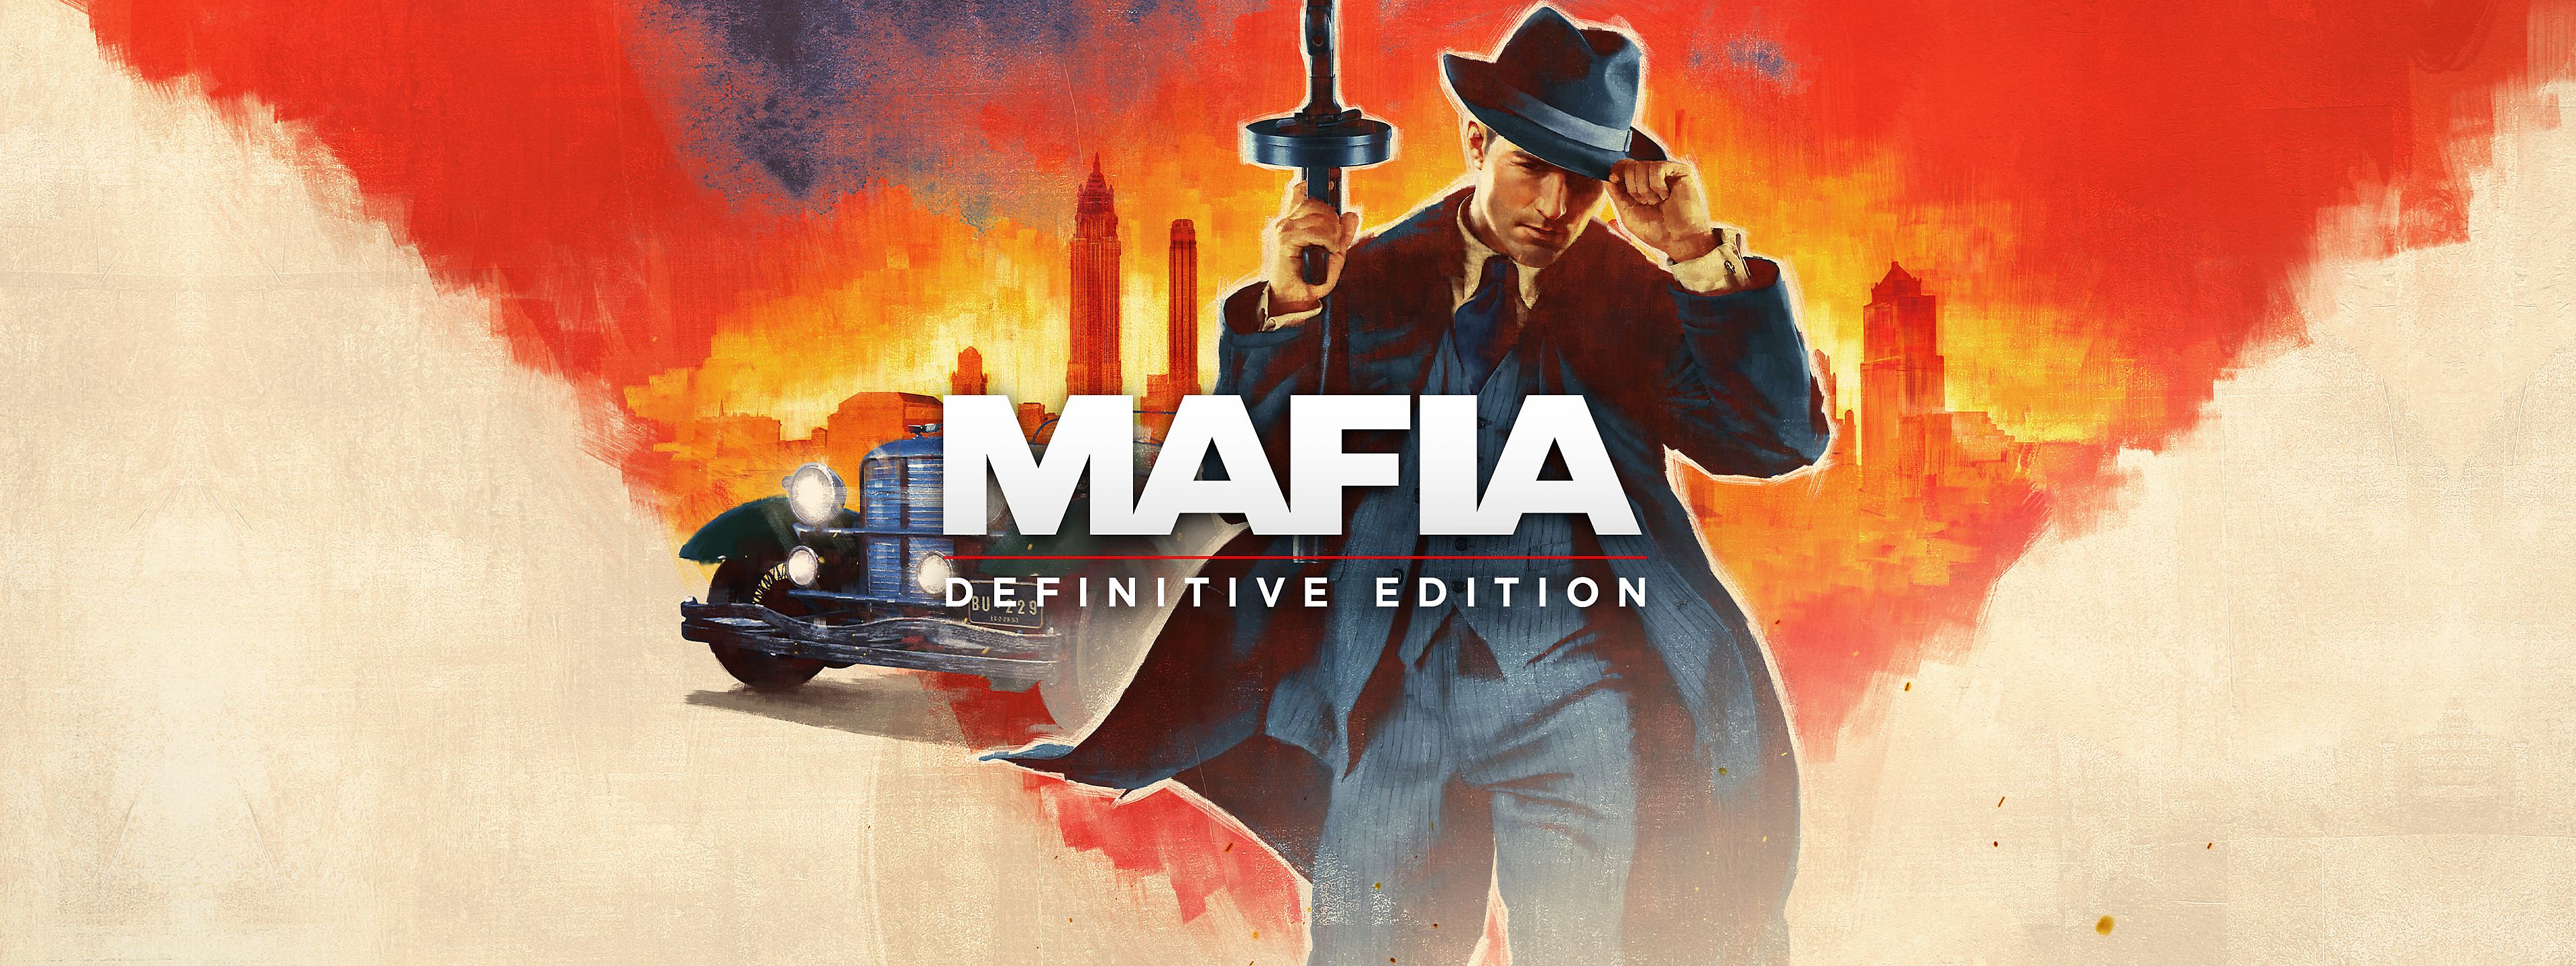 Mafia: Definitive Edition - Now Available